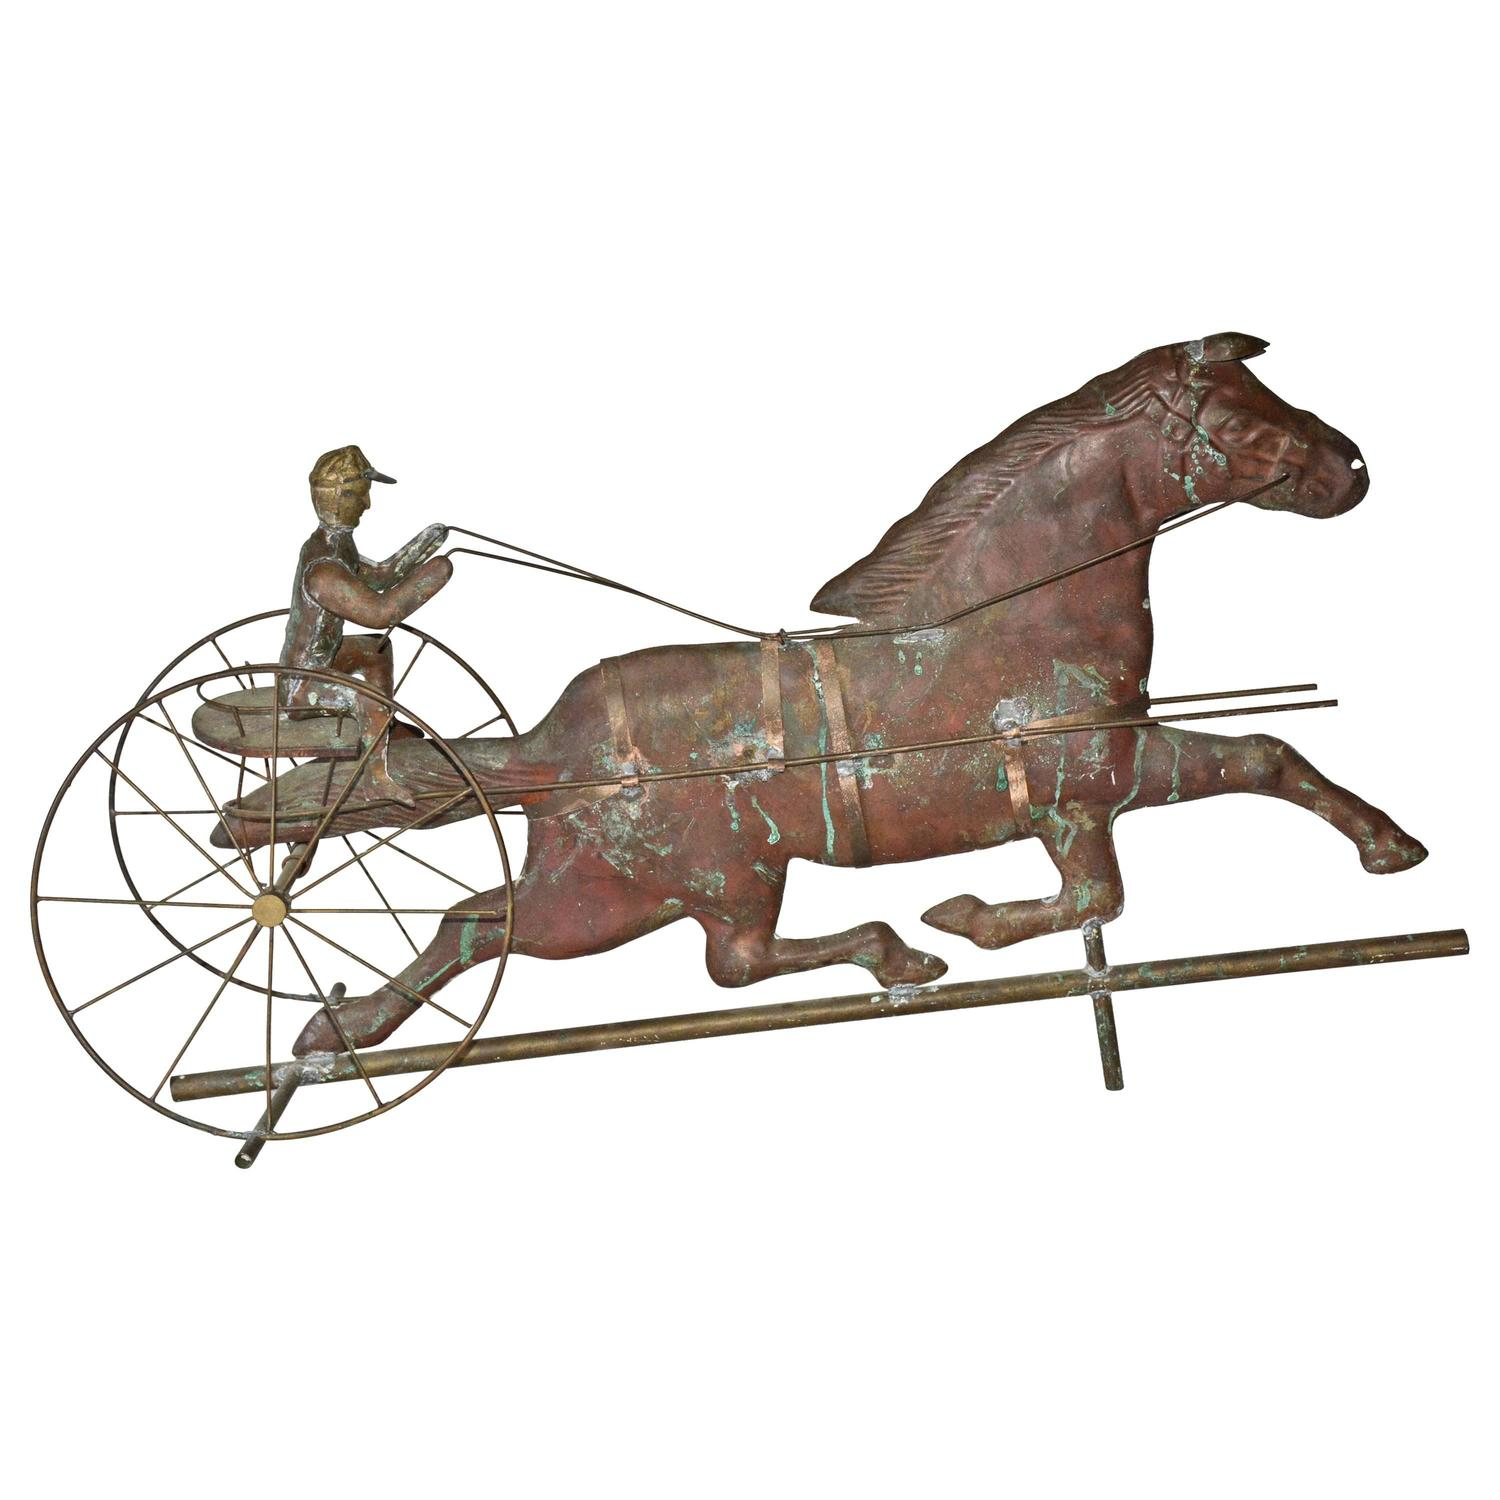 Vintage Weather Vane: Vintage Copper Trotting Horse And Jockey Weathervane For